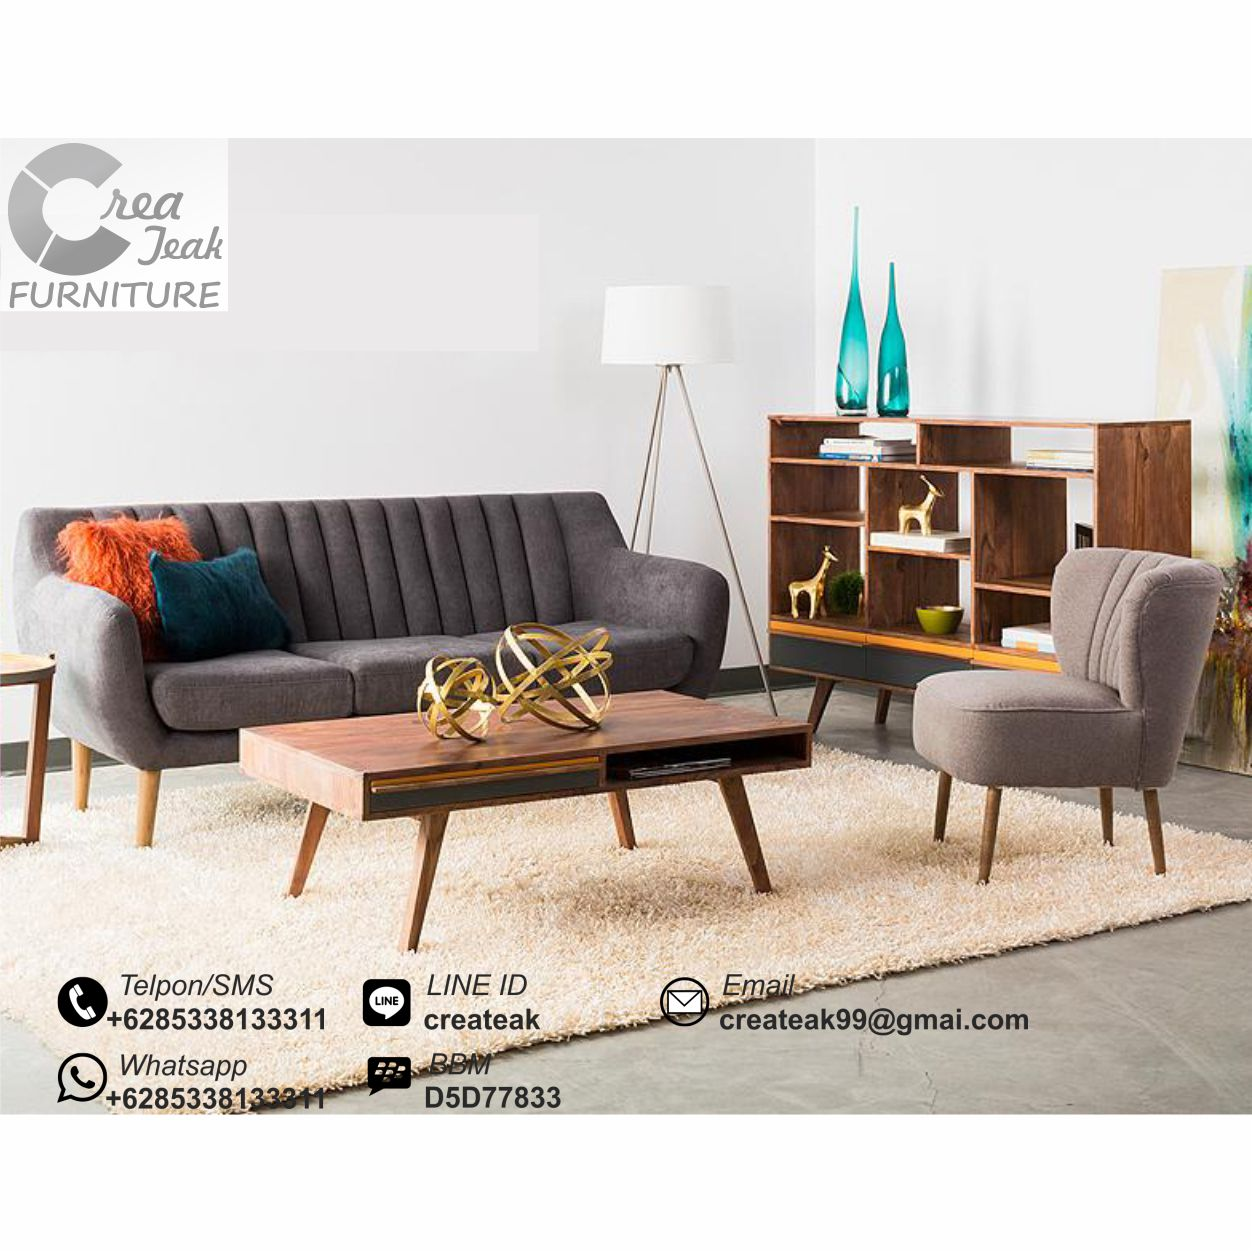 Set Sofa Tamu Retro Minimalis Verona Createak Furniture